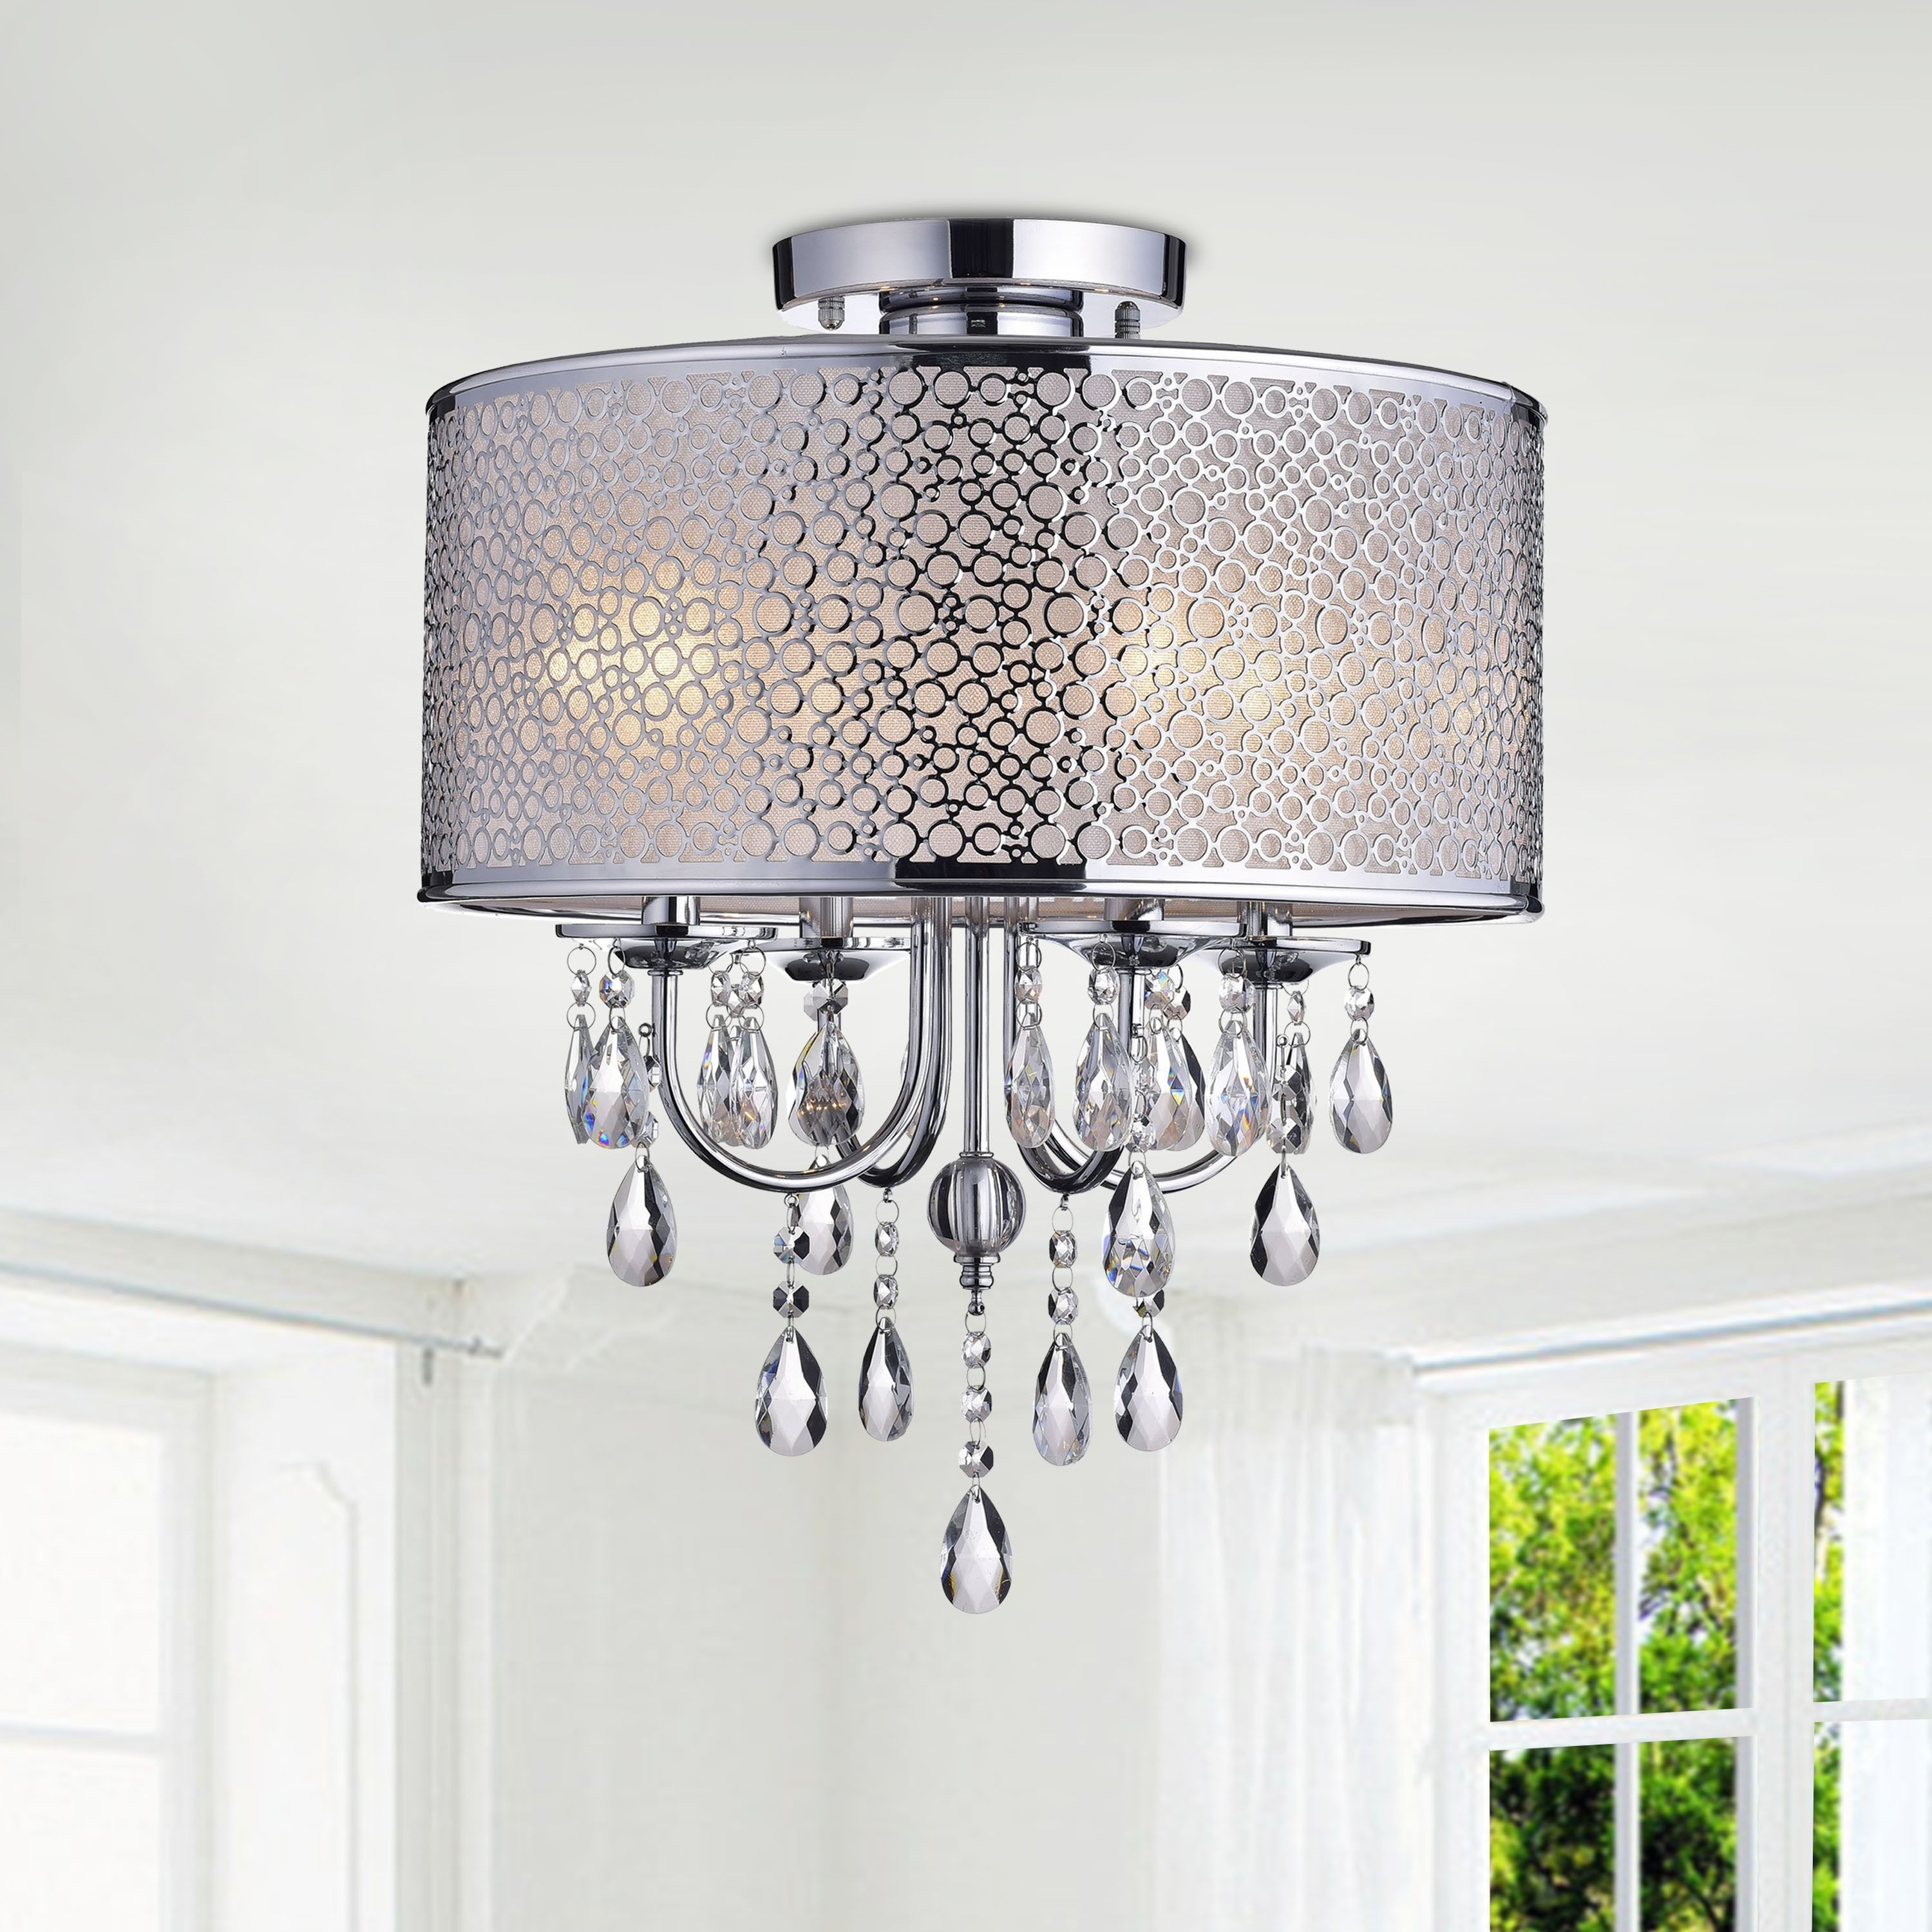 This Chandelier Features Gently Curved Arms In Shiny Chrome Fixture Finish Supporting Four Lights The Shade Is A Circular And Crystal Piece To Add